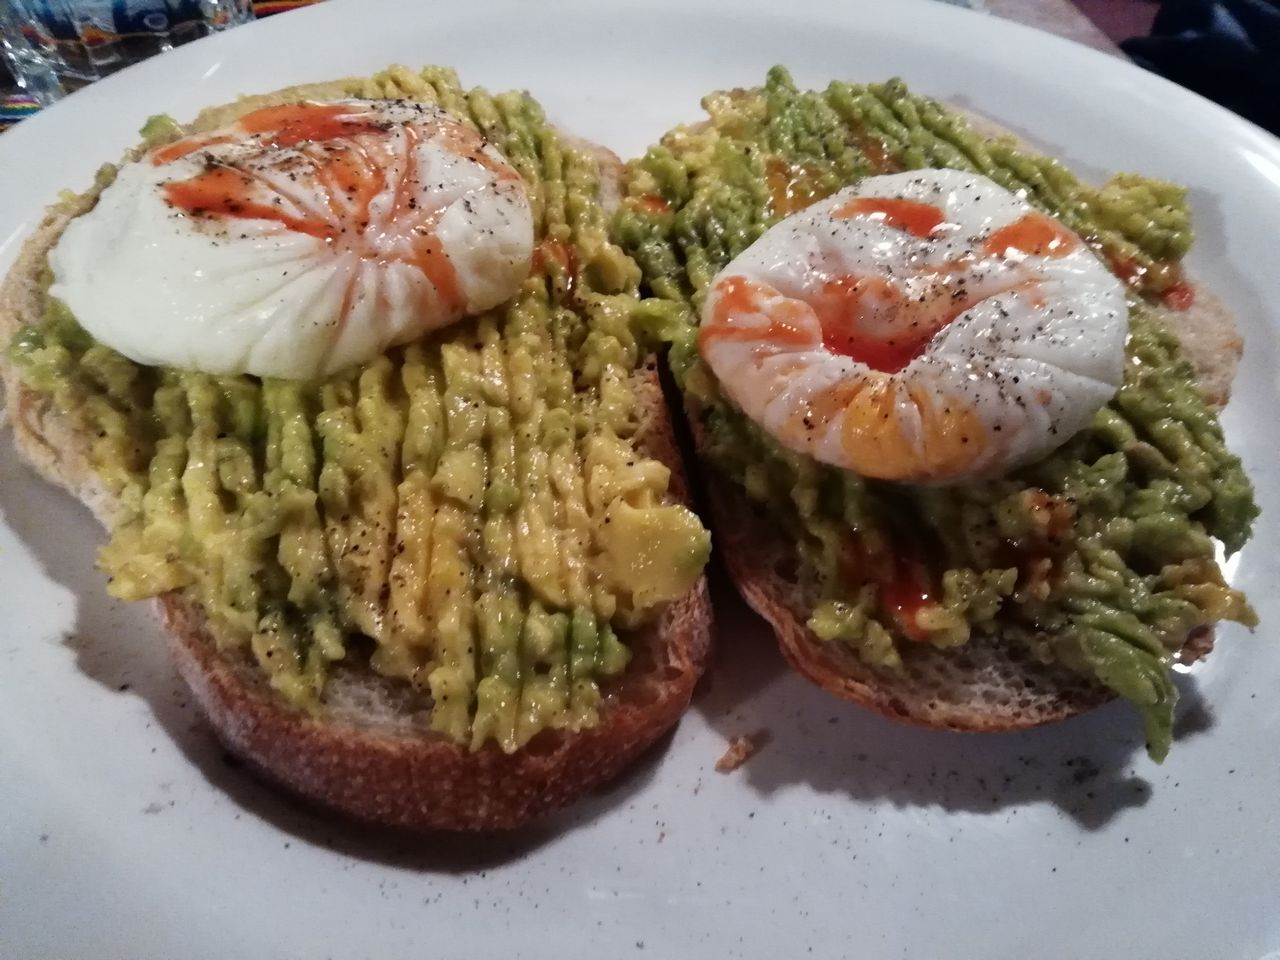 Tosta de aguacate con huevo escalfado de The Carrot Tree, La Paz.